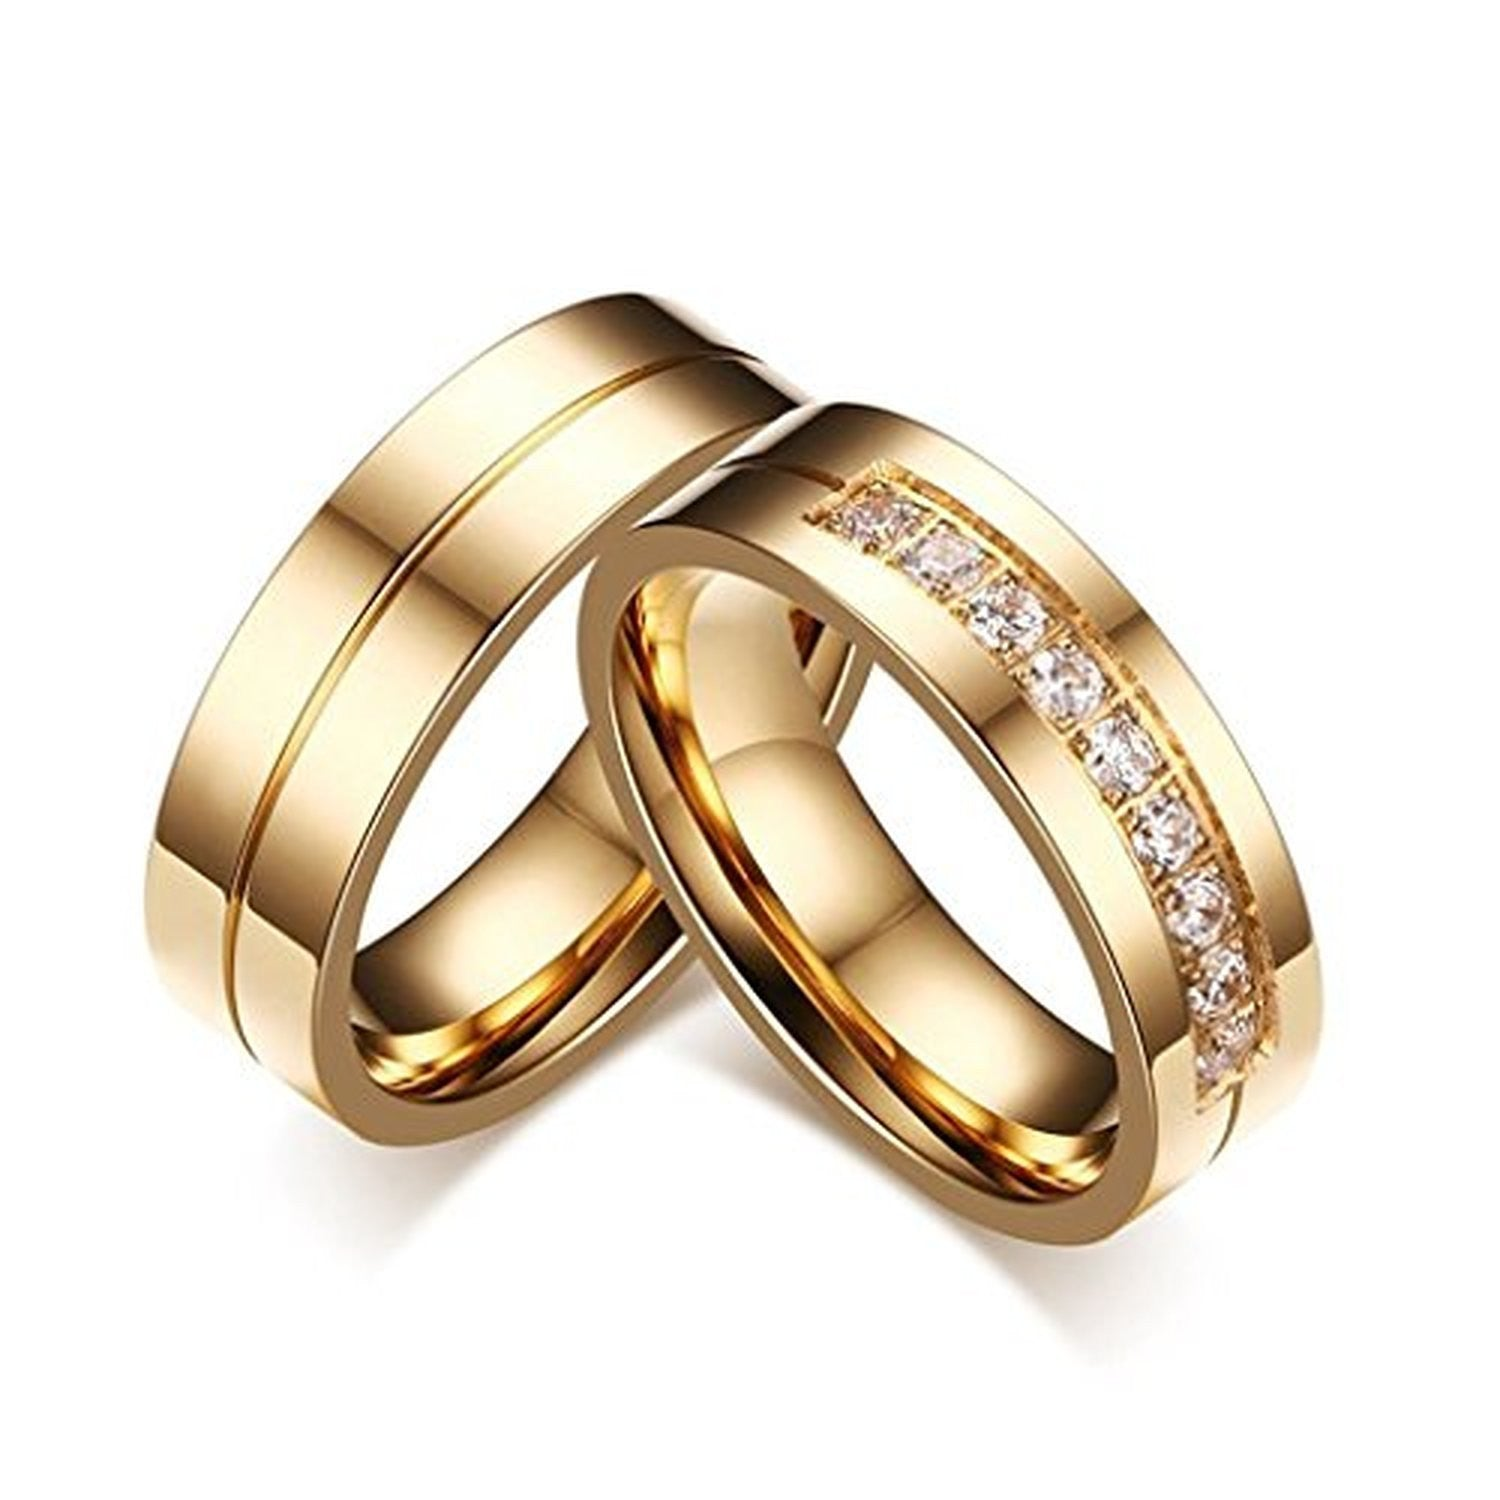 lyst ring rings engagement rhodium layered imitation metallic product bcbgmaxazria gallery in pave jewelry normal